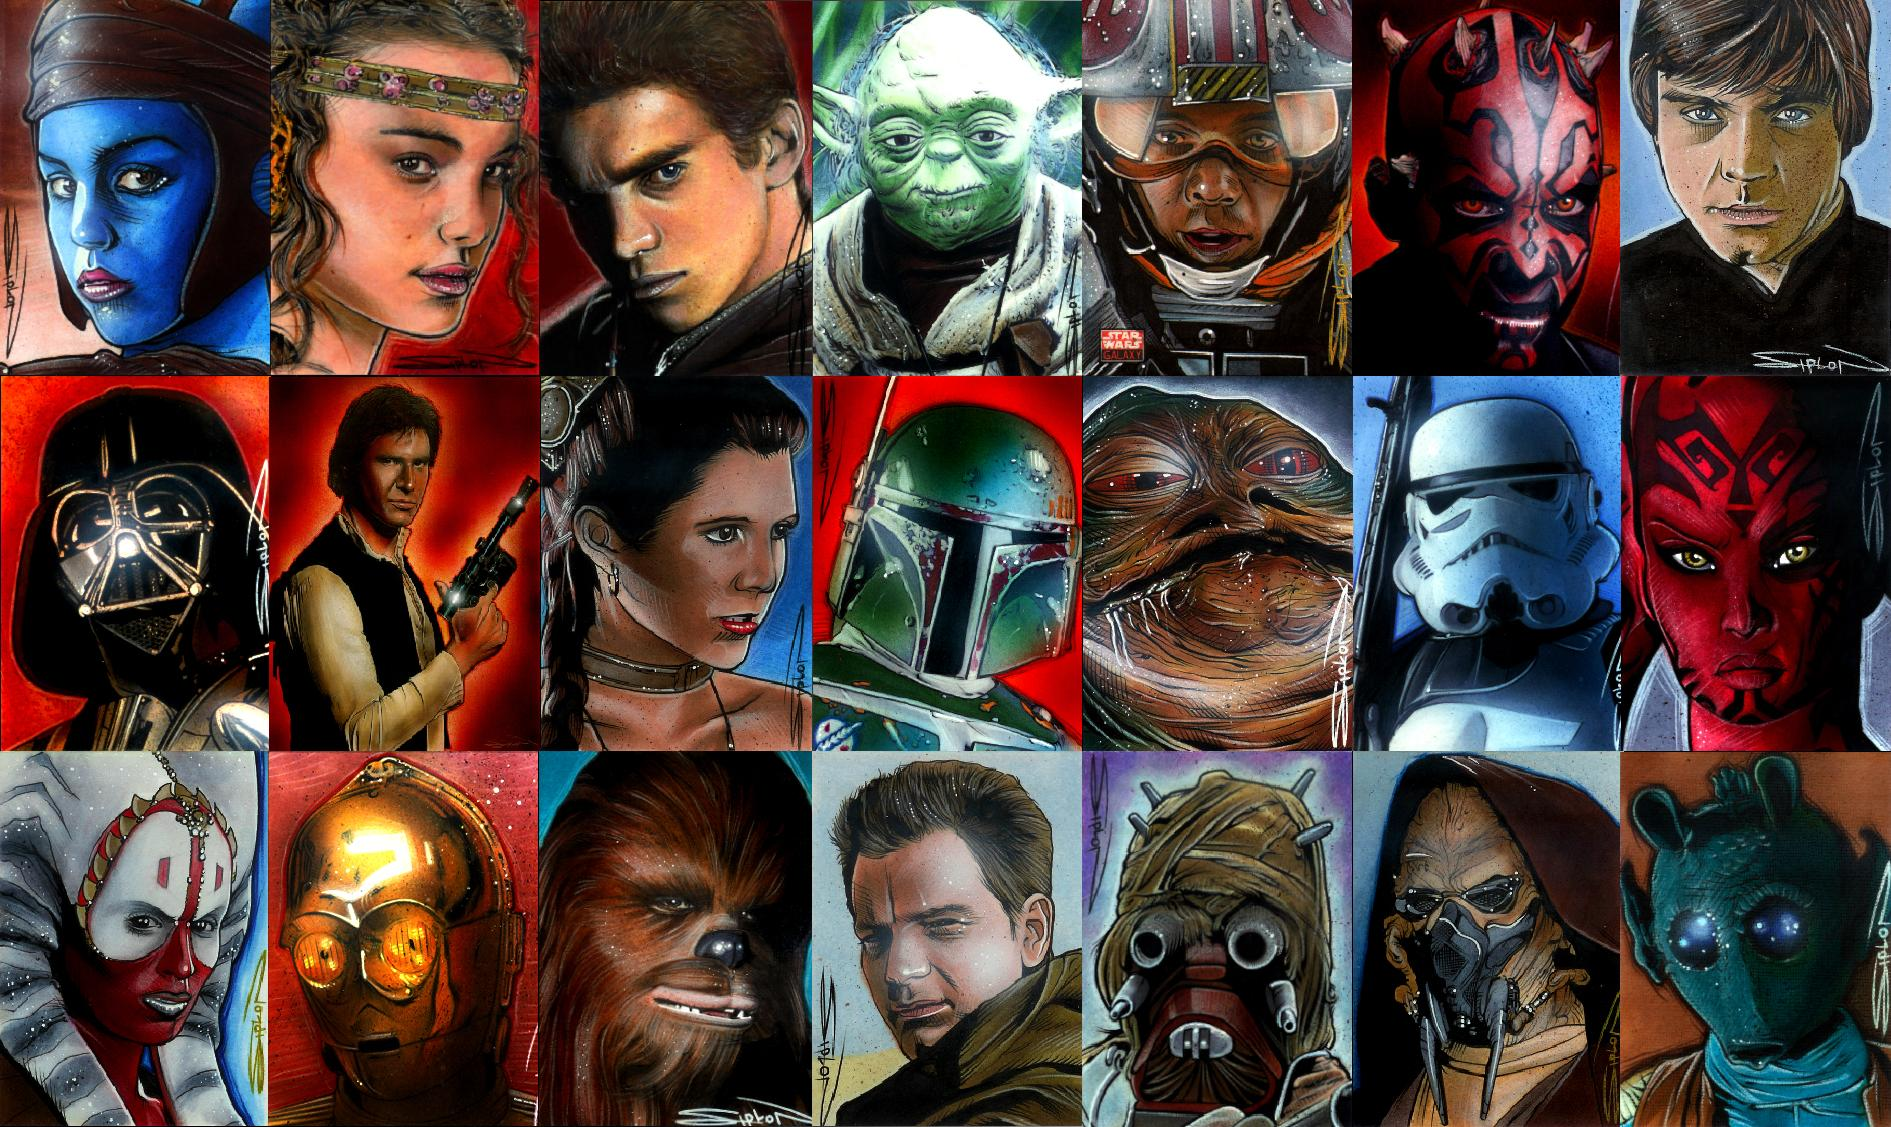 star_wars_cards_wallpaper_by_masterbarkeep-d350747.jpg